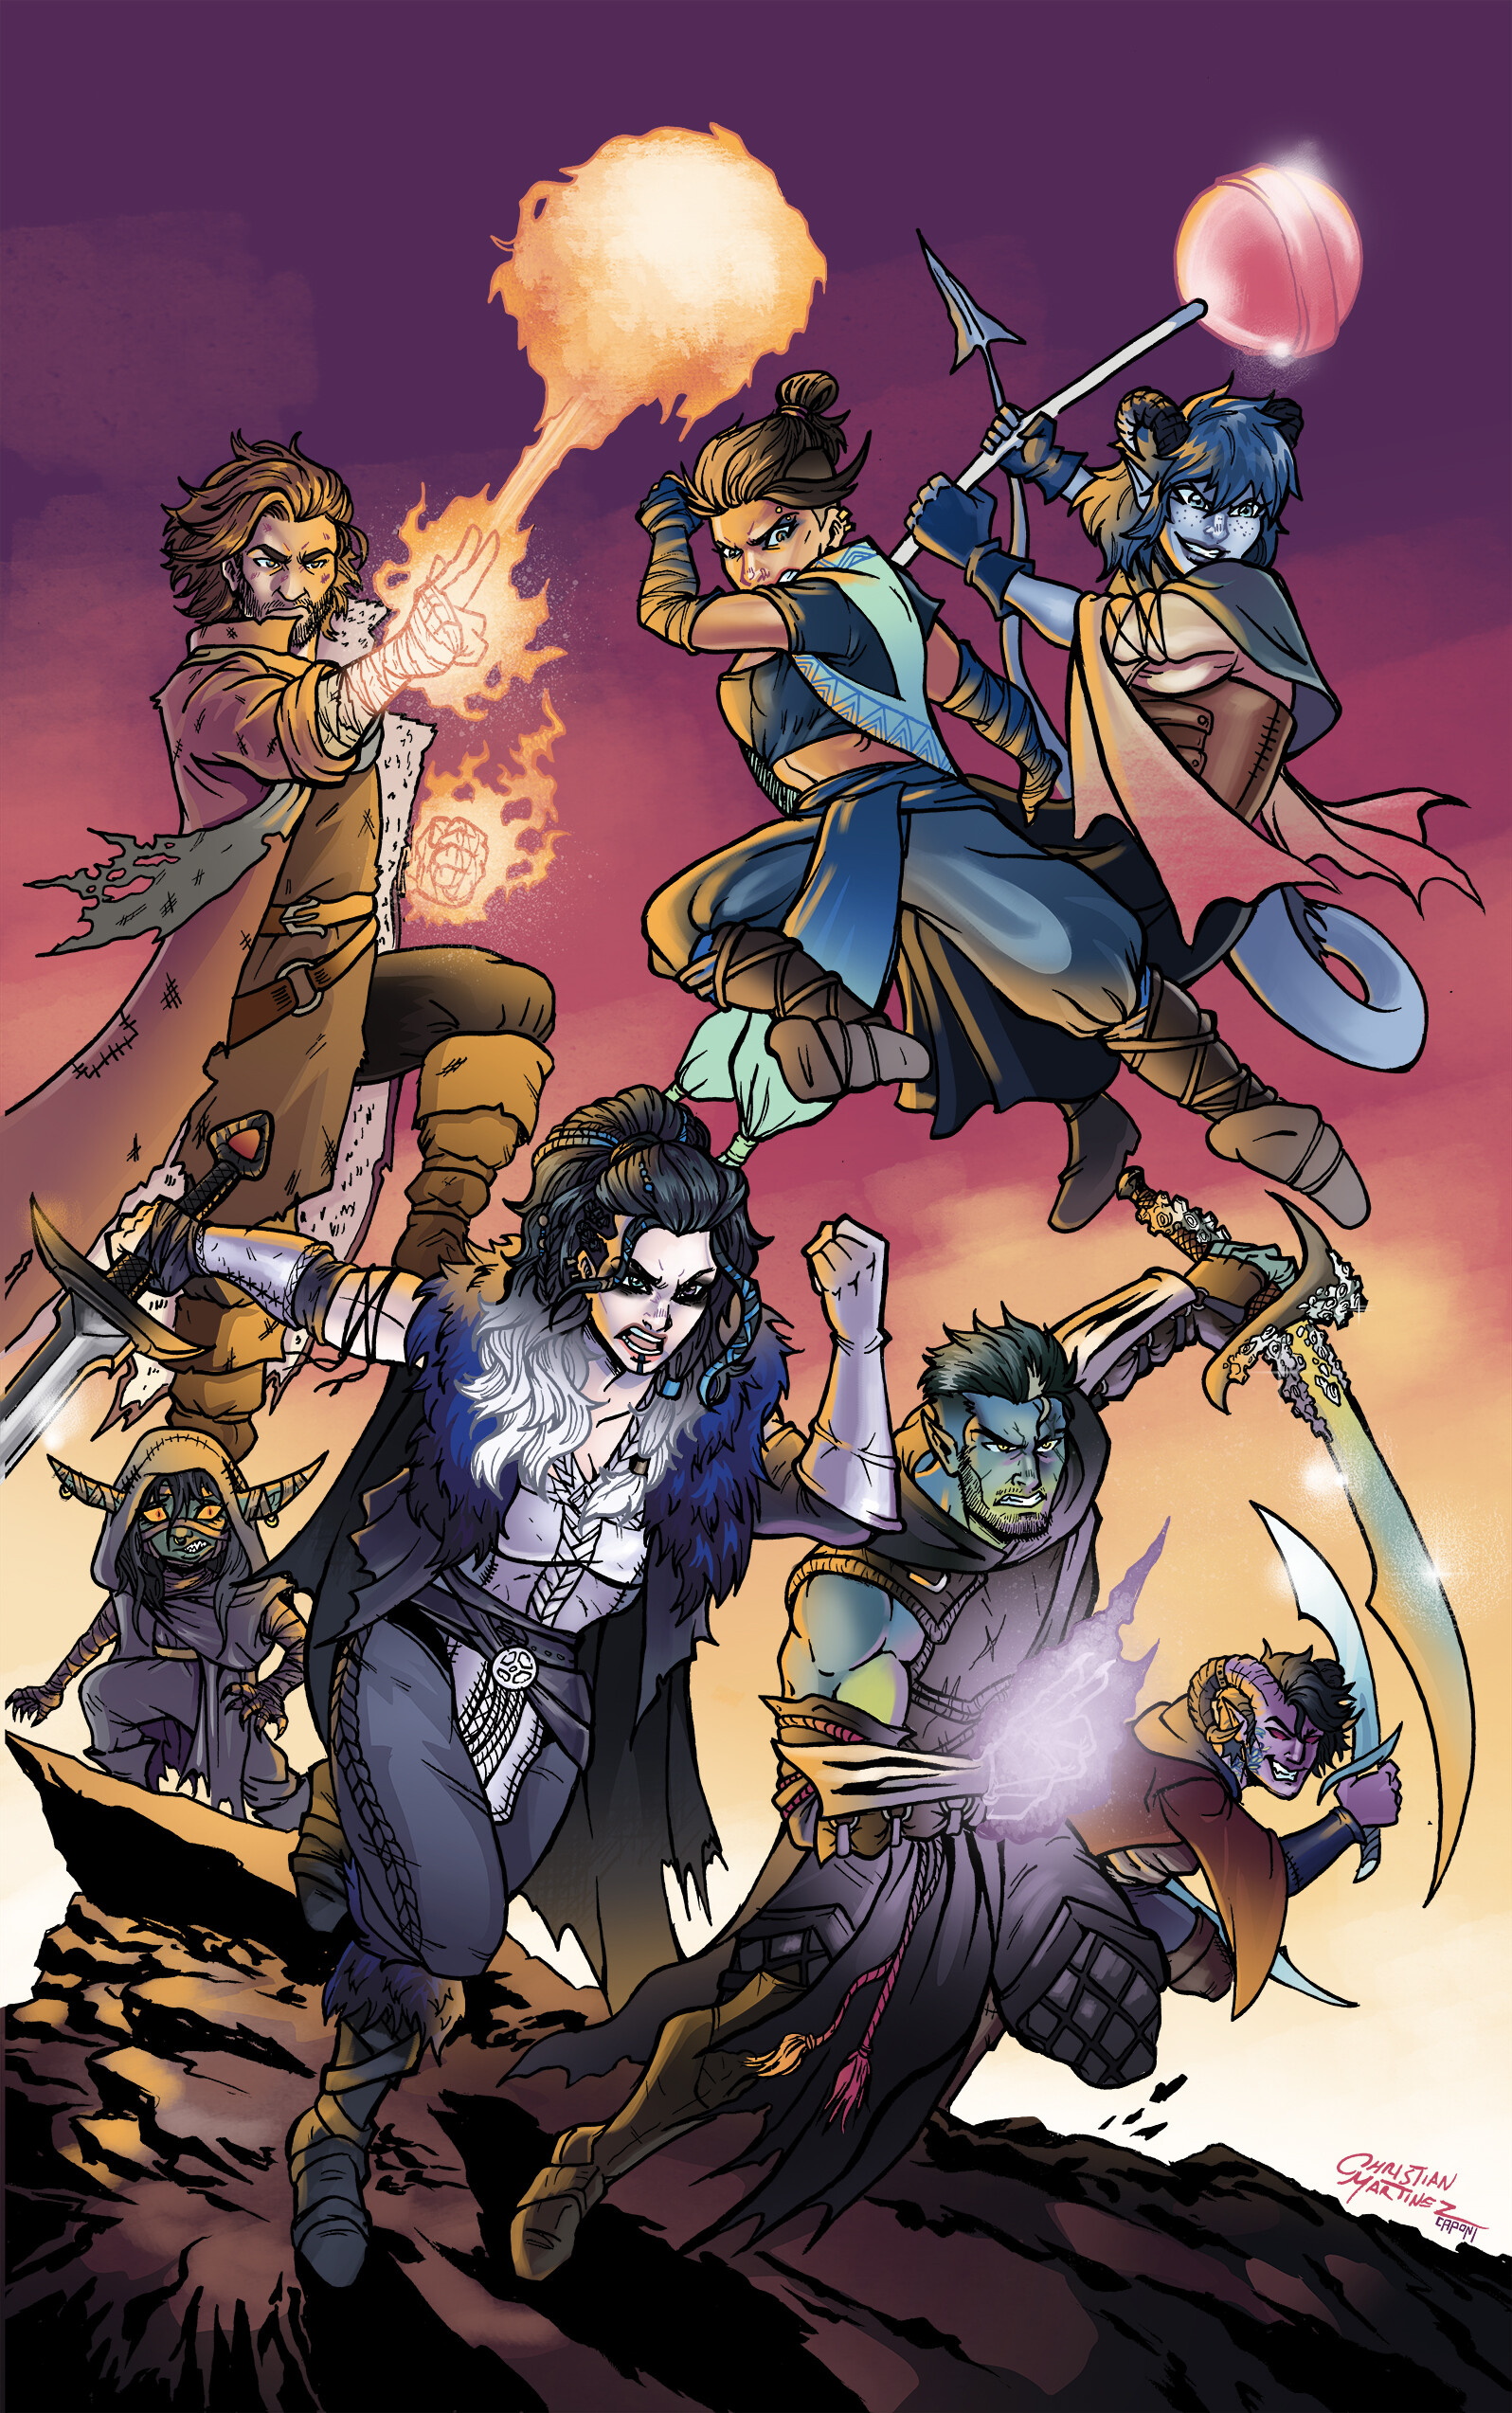 Christian Martinez Critical Role The Mighty Nein Some fanart of the mighty nein from critical role. christian martinez critical role the